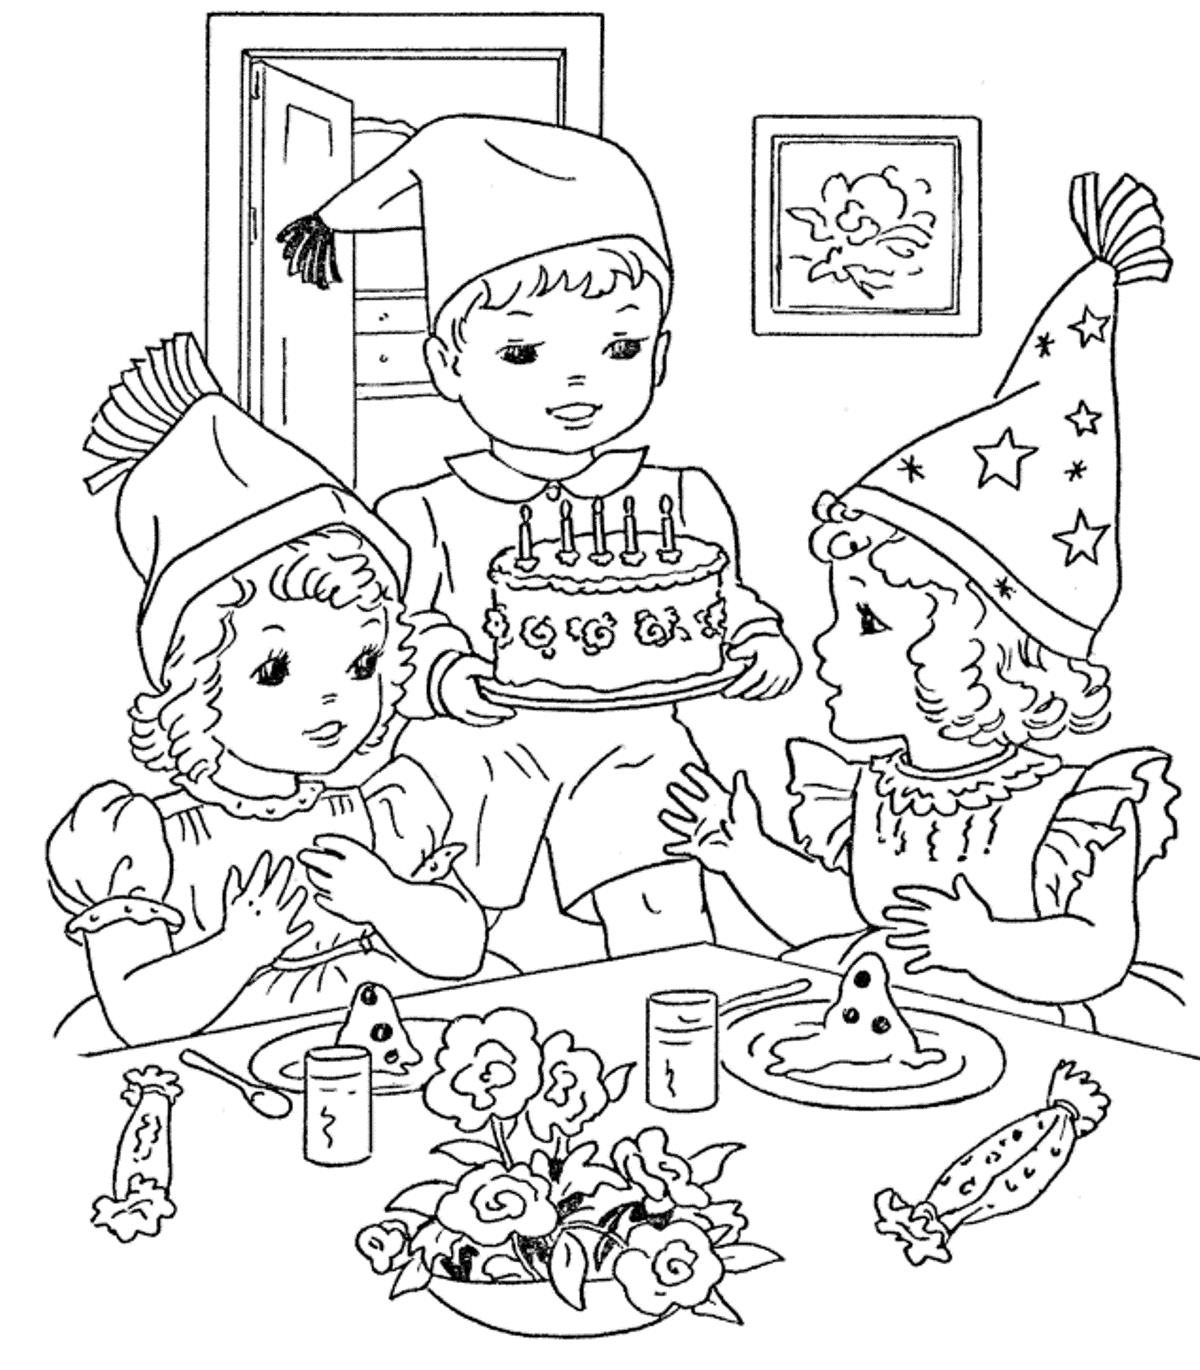 birthday party colouring sheets ; Printable-Pictures-Birthday-Party-Colouring-Pages-75-For-Download-Coloring-Pages-with-Birthday-Party-Colouring-Pages